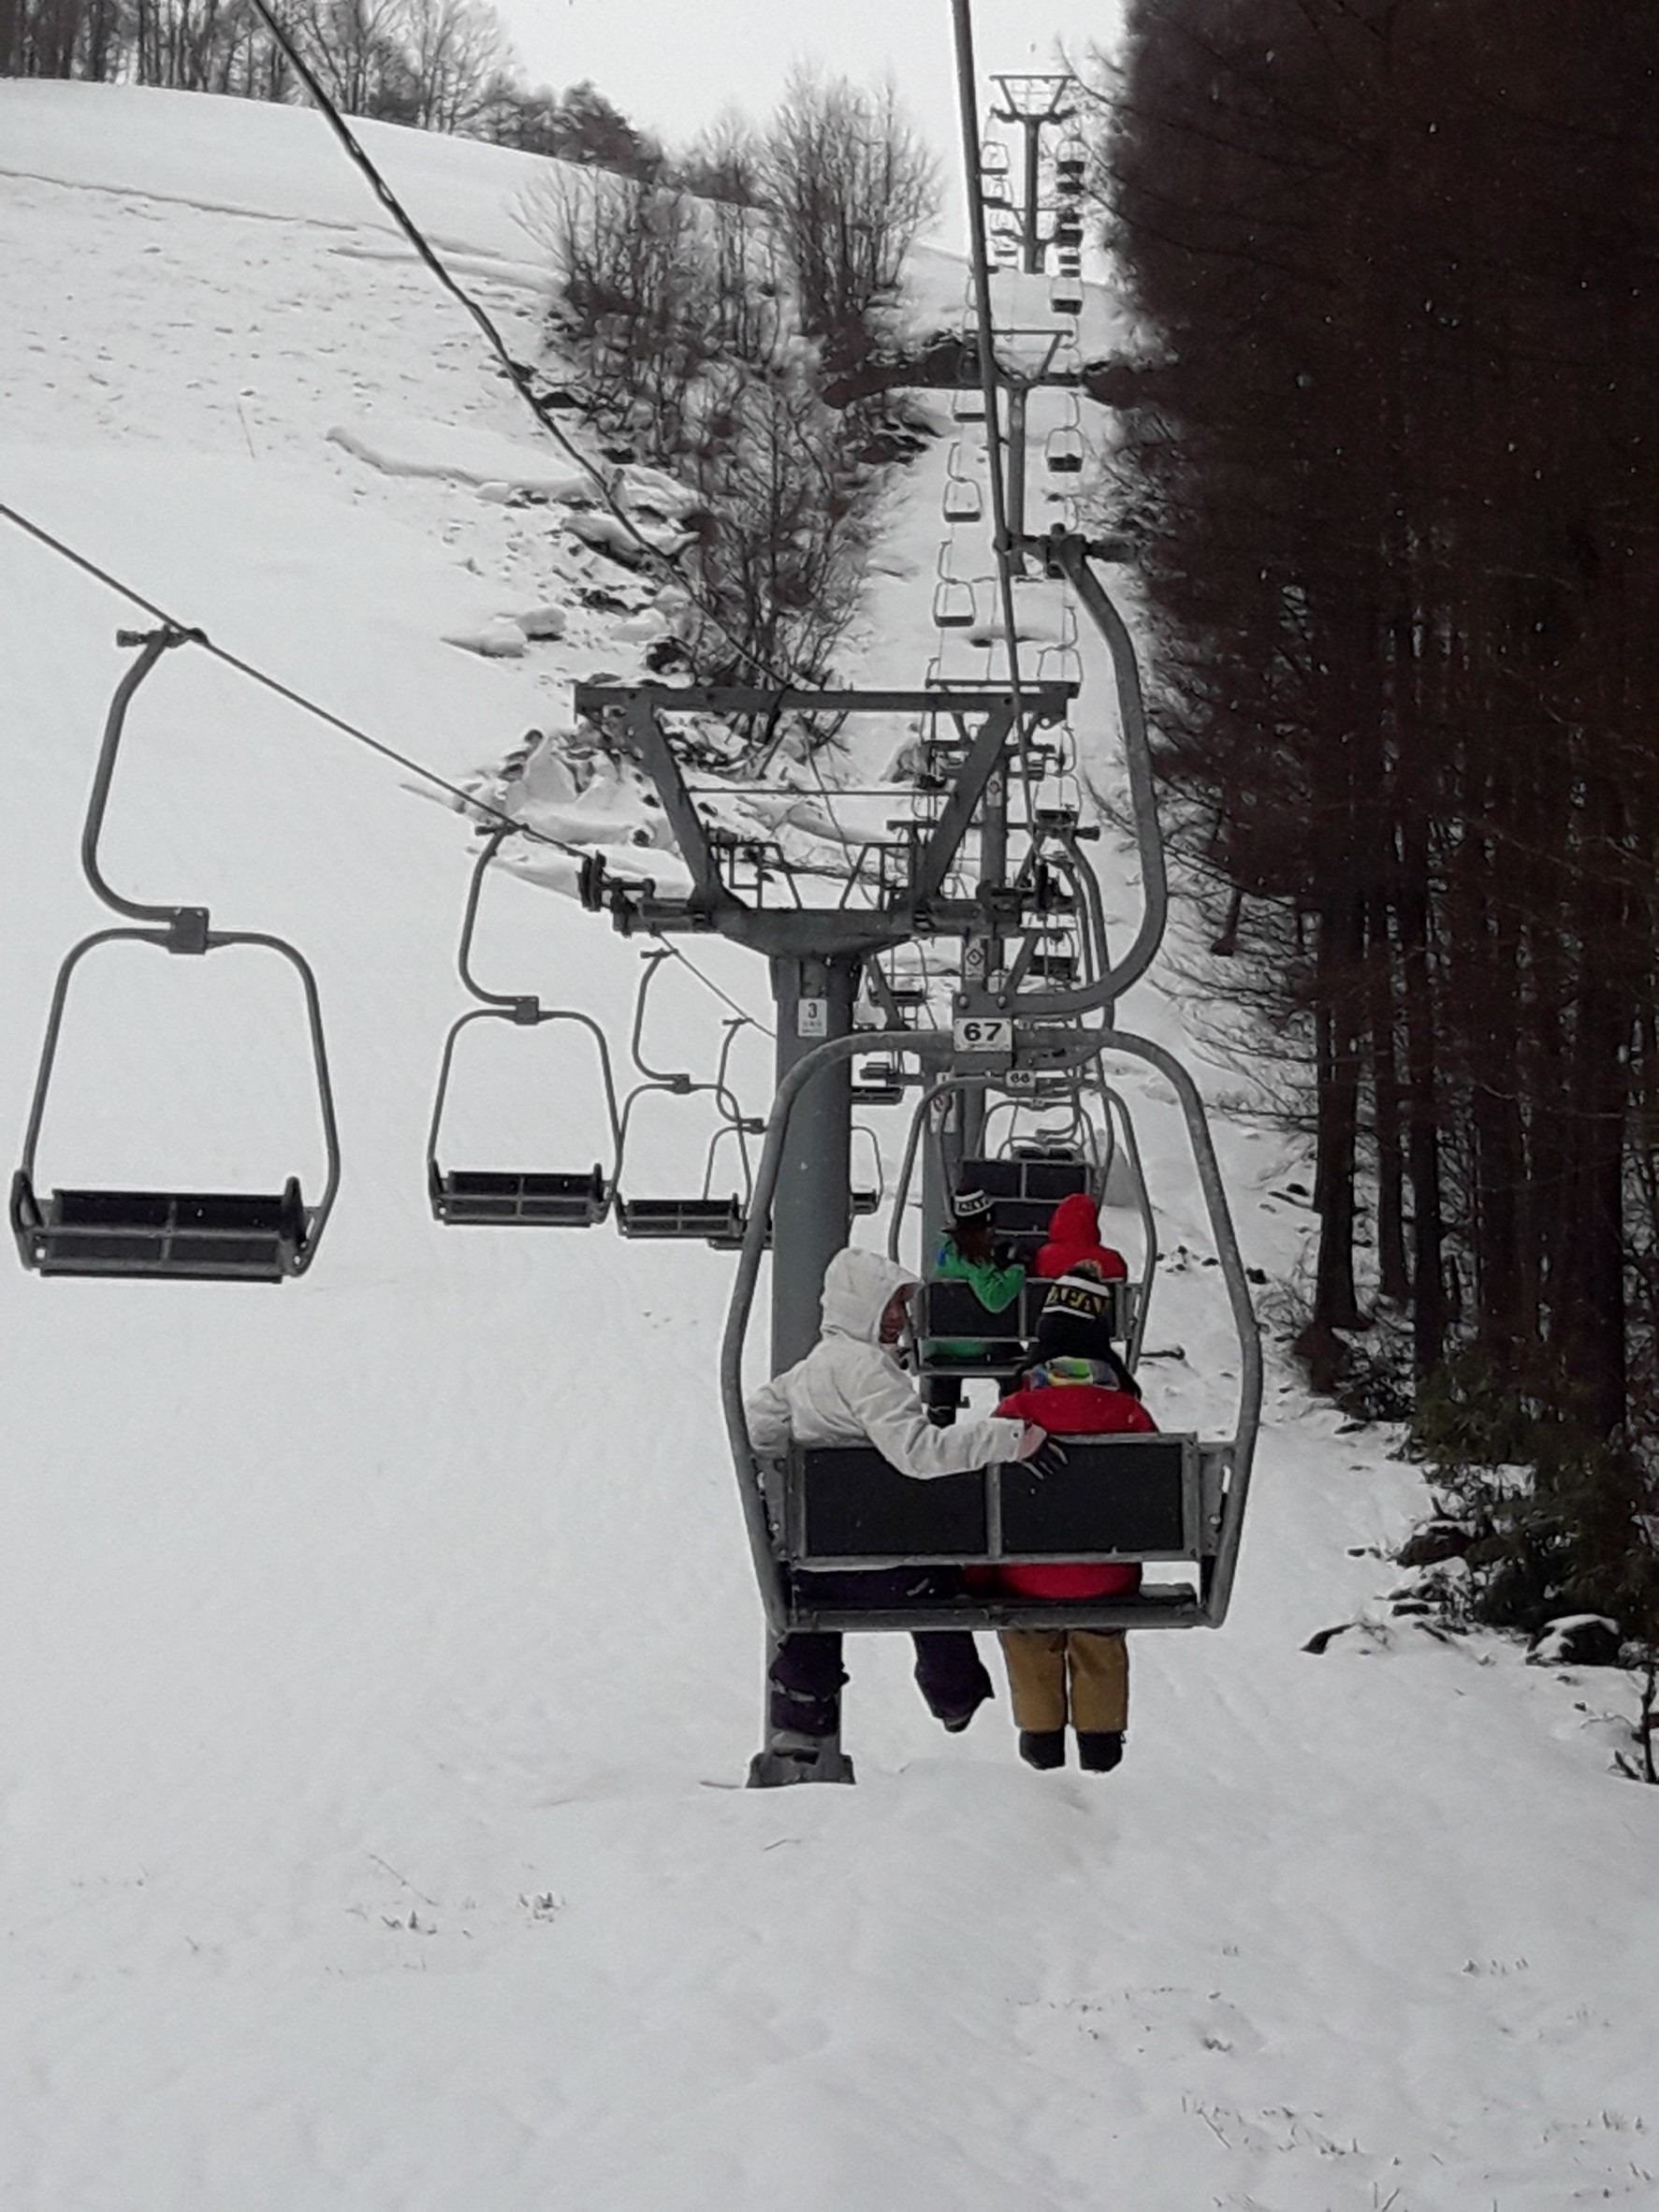 Ten-Ei Ski Resort_๑๘๐๓๓๐_0106